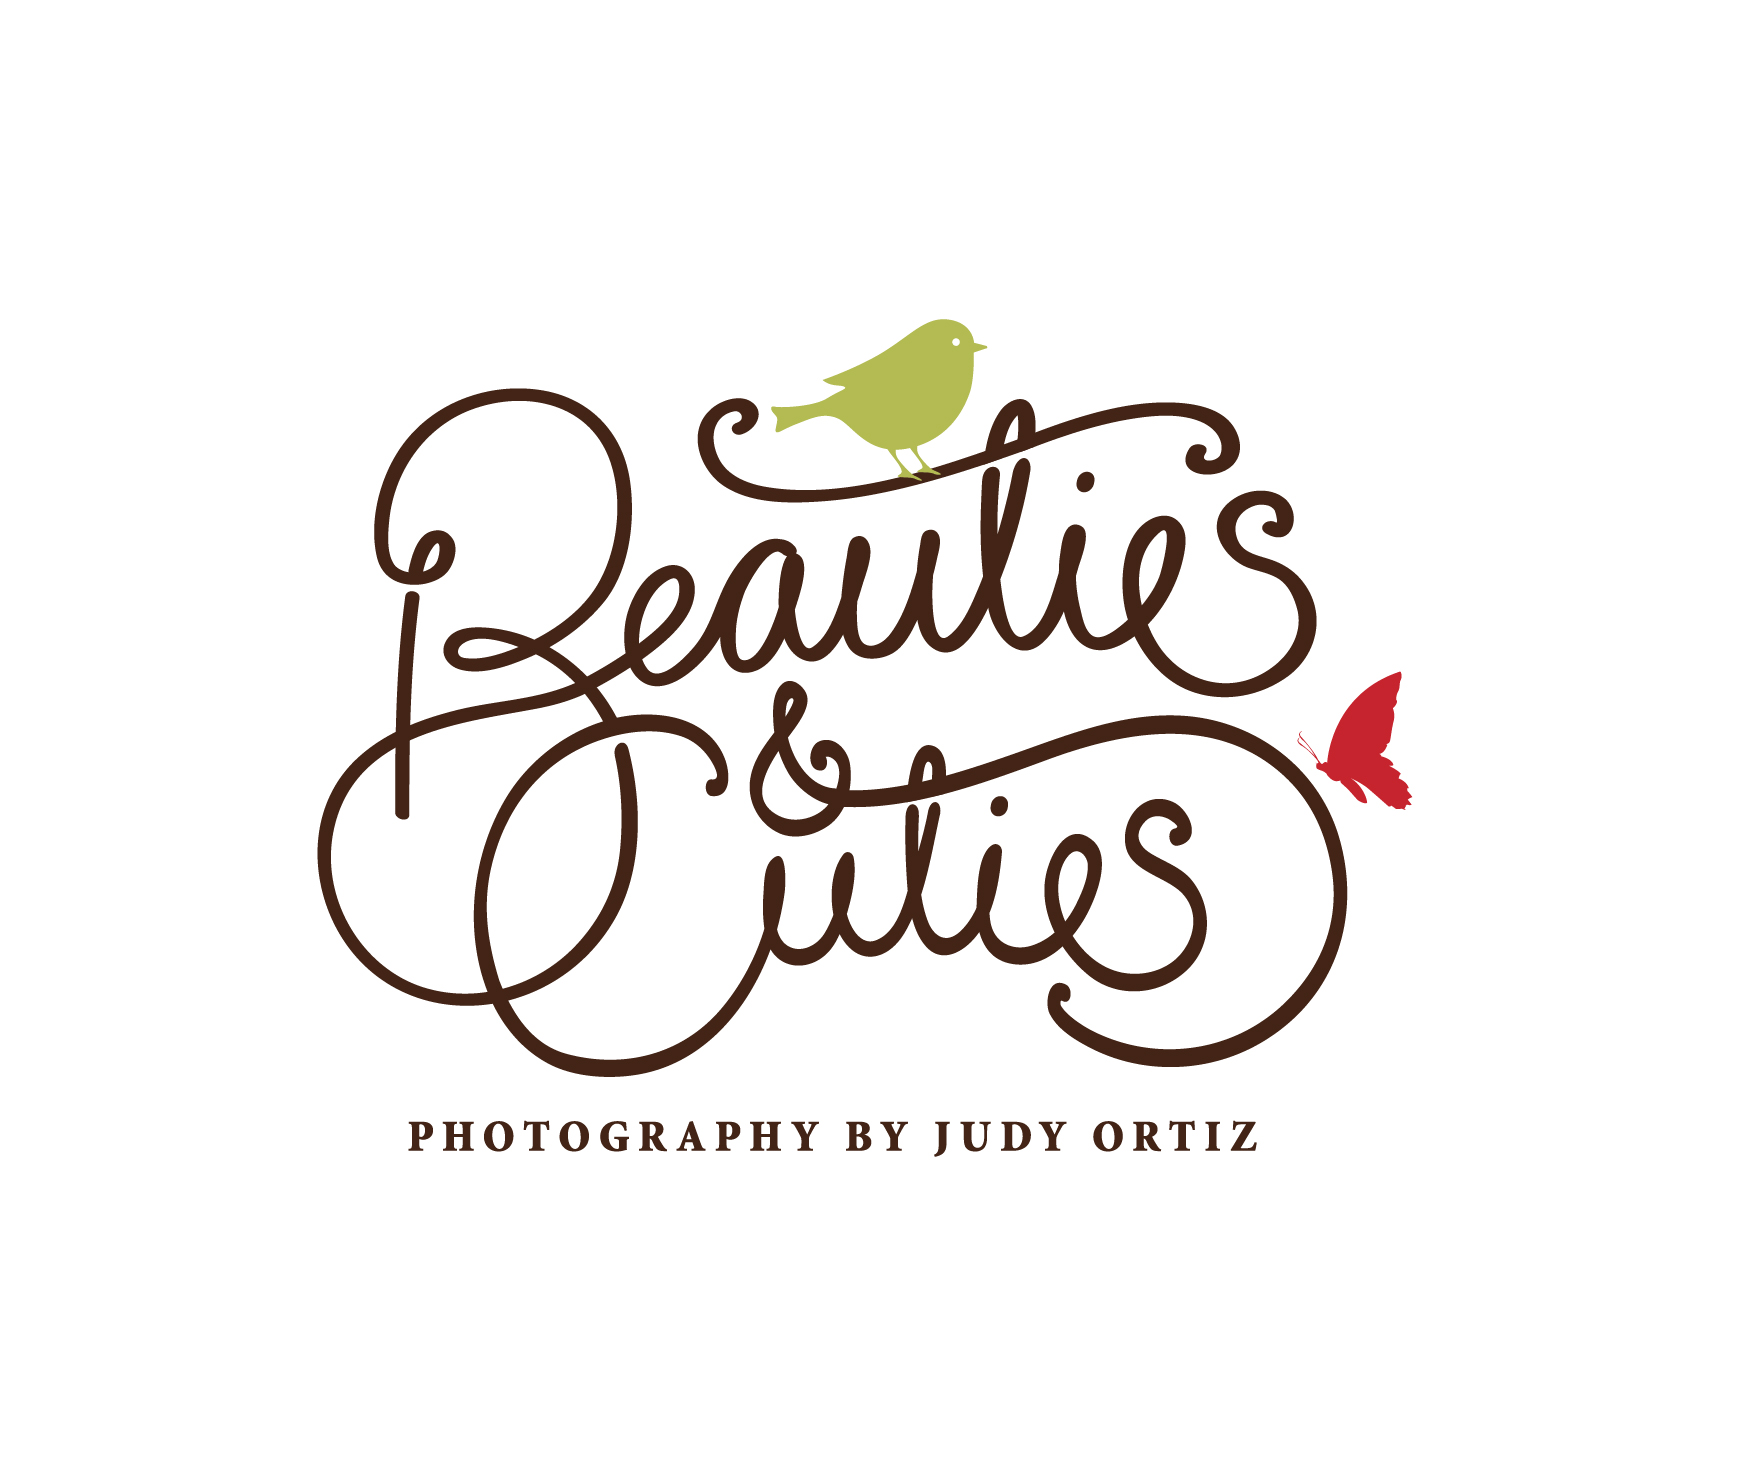 Beauties & Cuties Logo Design